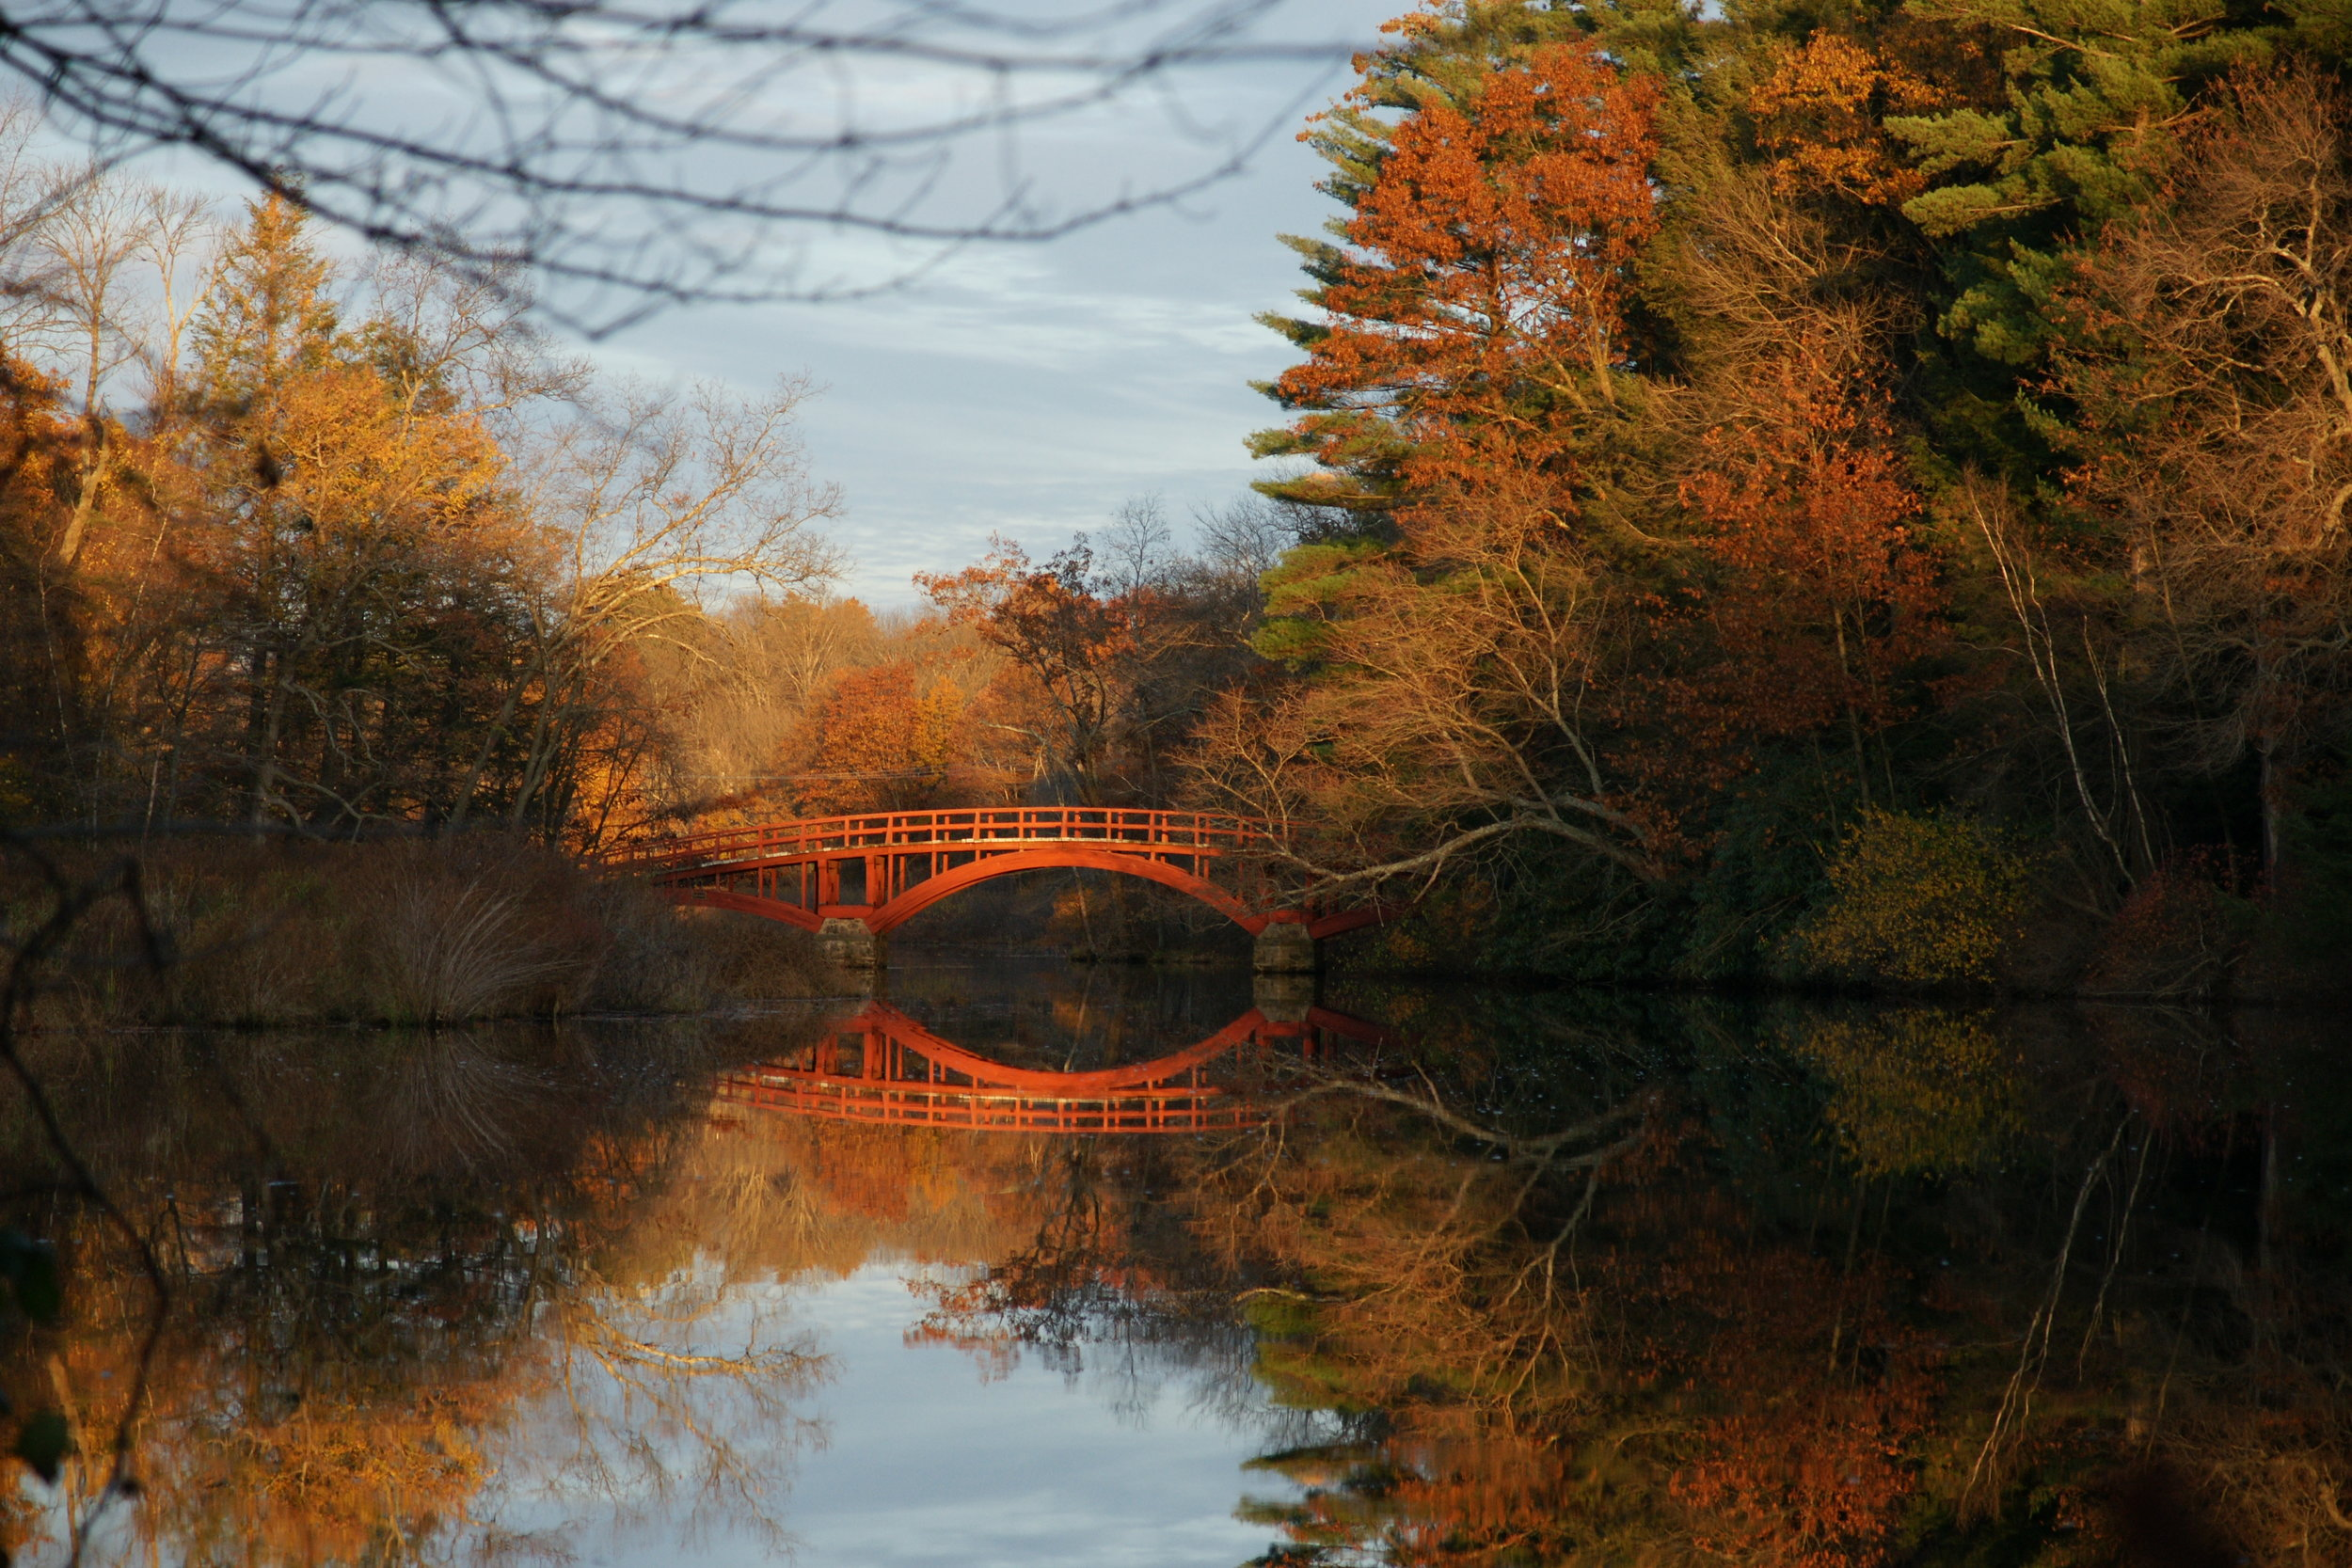 Red Bridge on Charles River in Natick [Photo credit: Kelli Connelly]